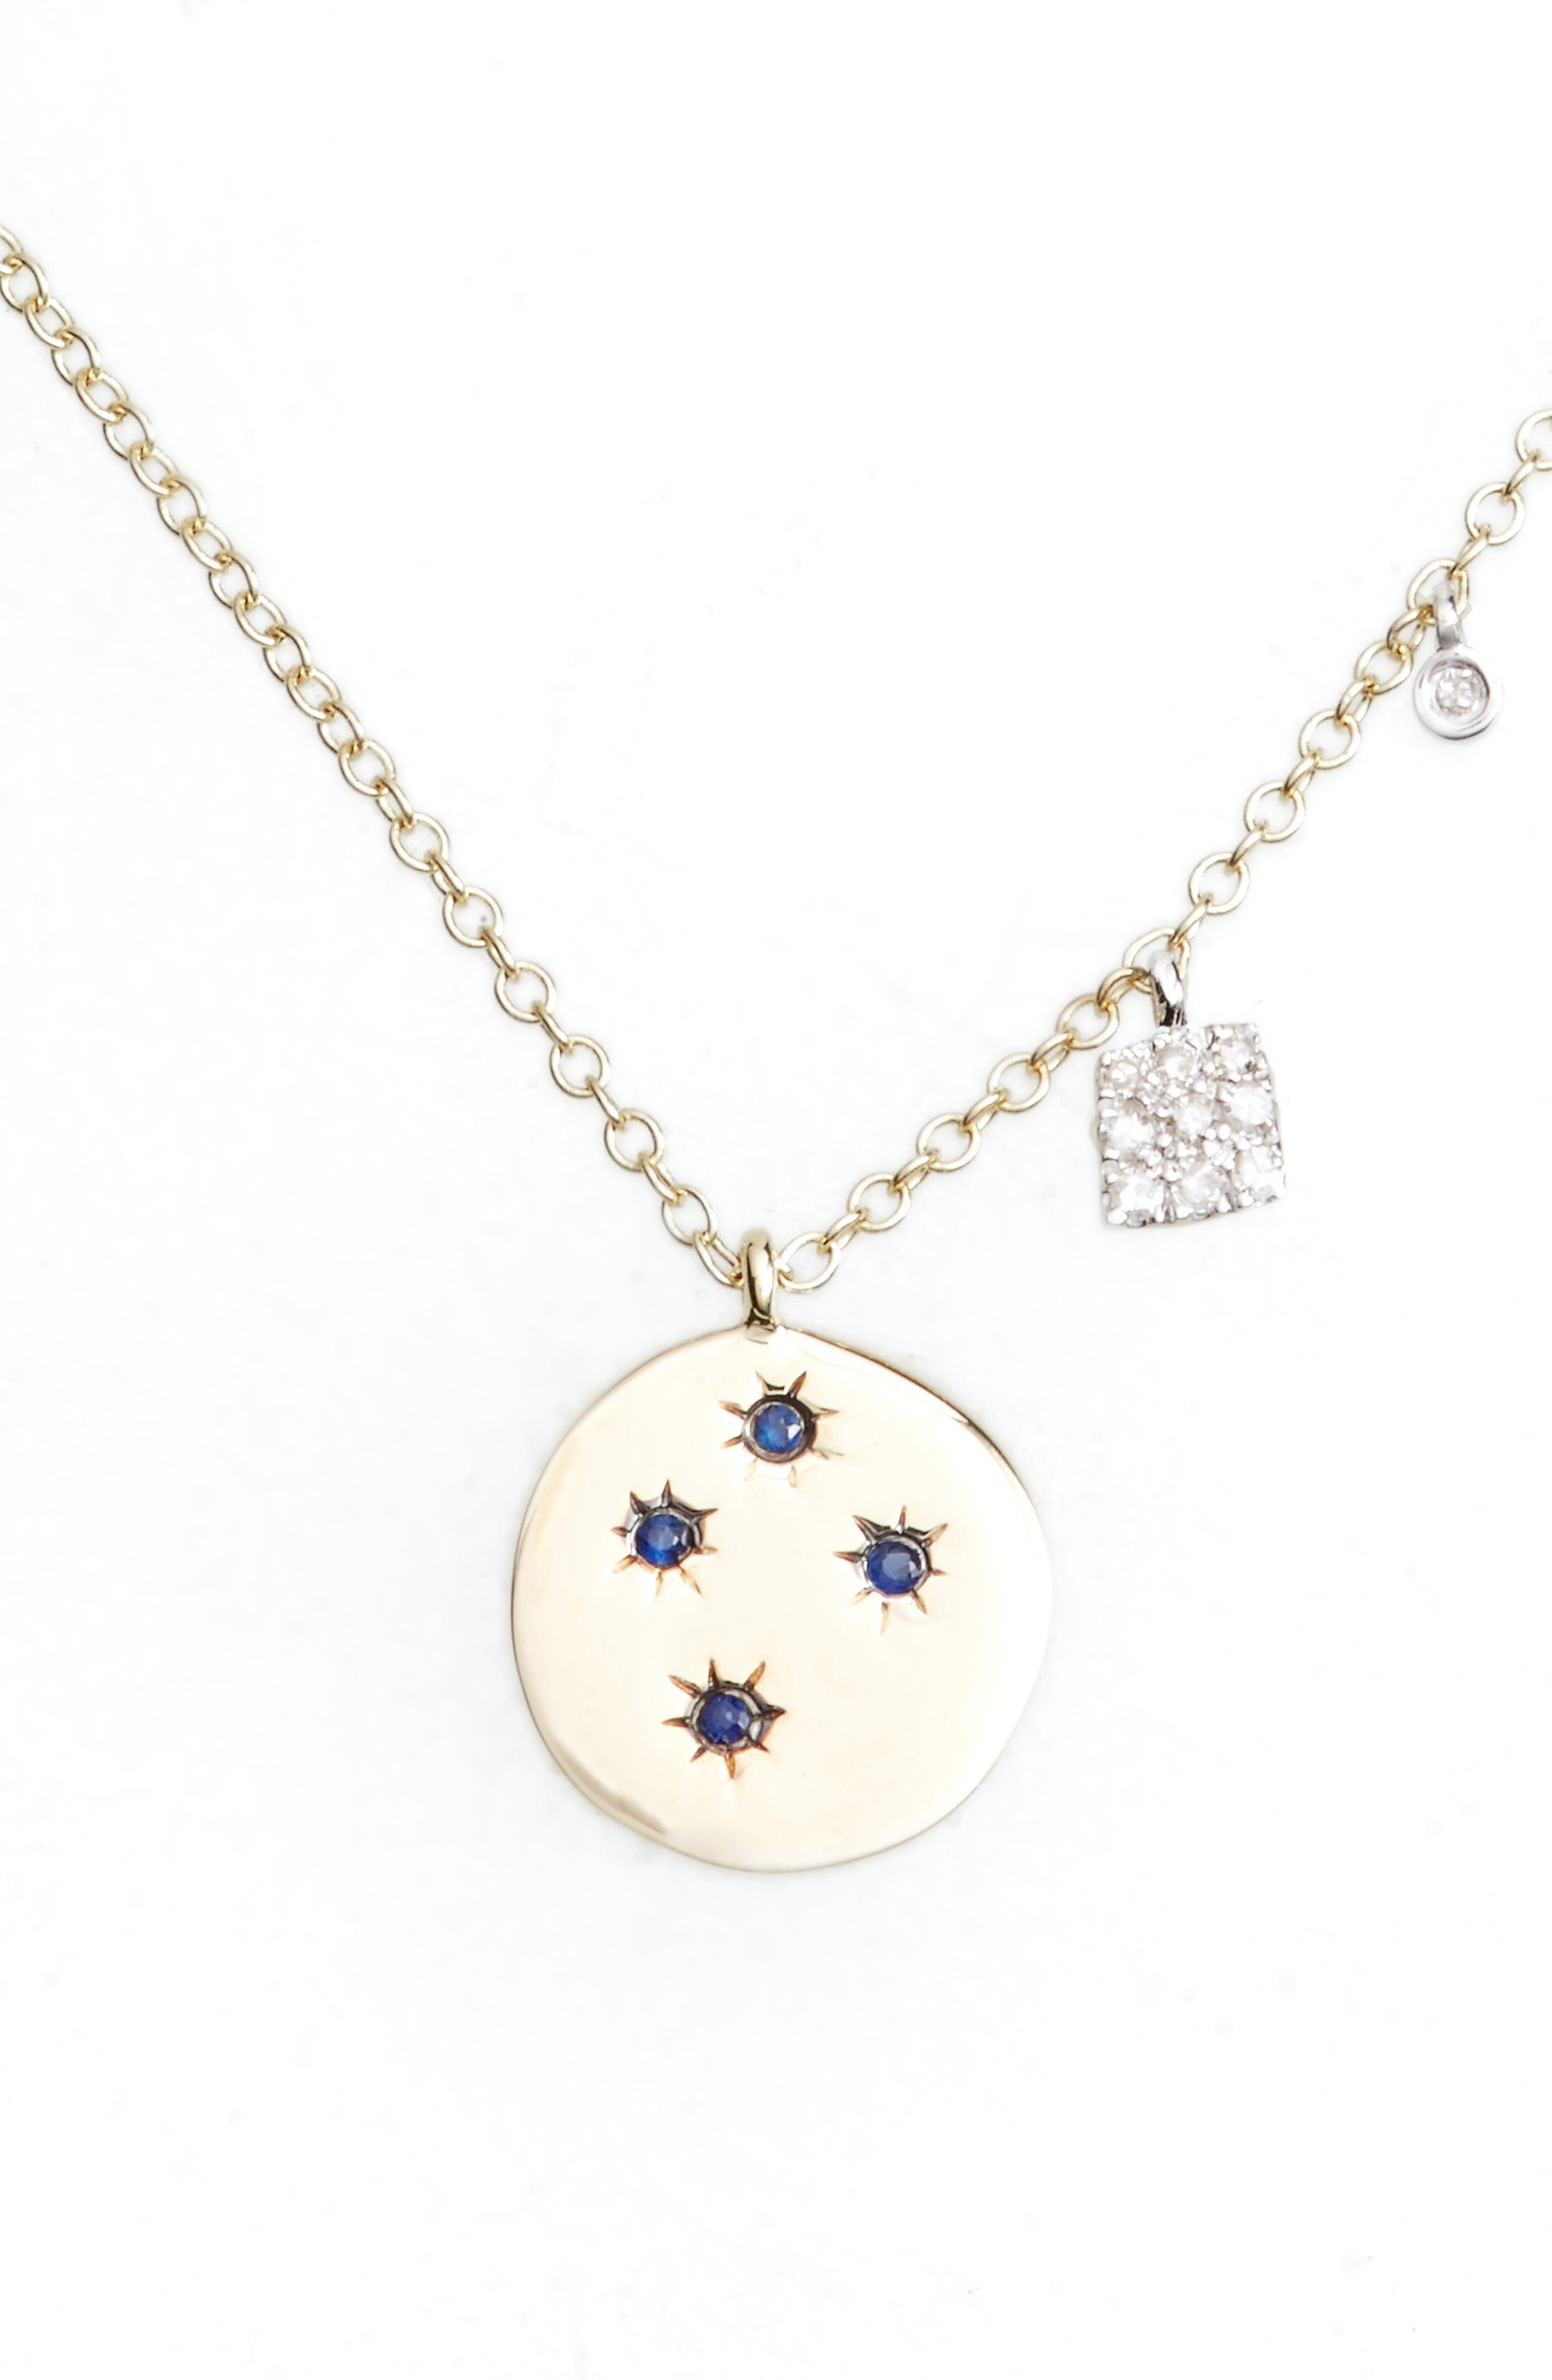 Diamond & Gemstone Pendant Necklace,                         Main,                         color, YELLOW GOLD/ BLUE SAPPHIRE